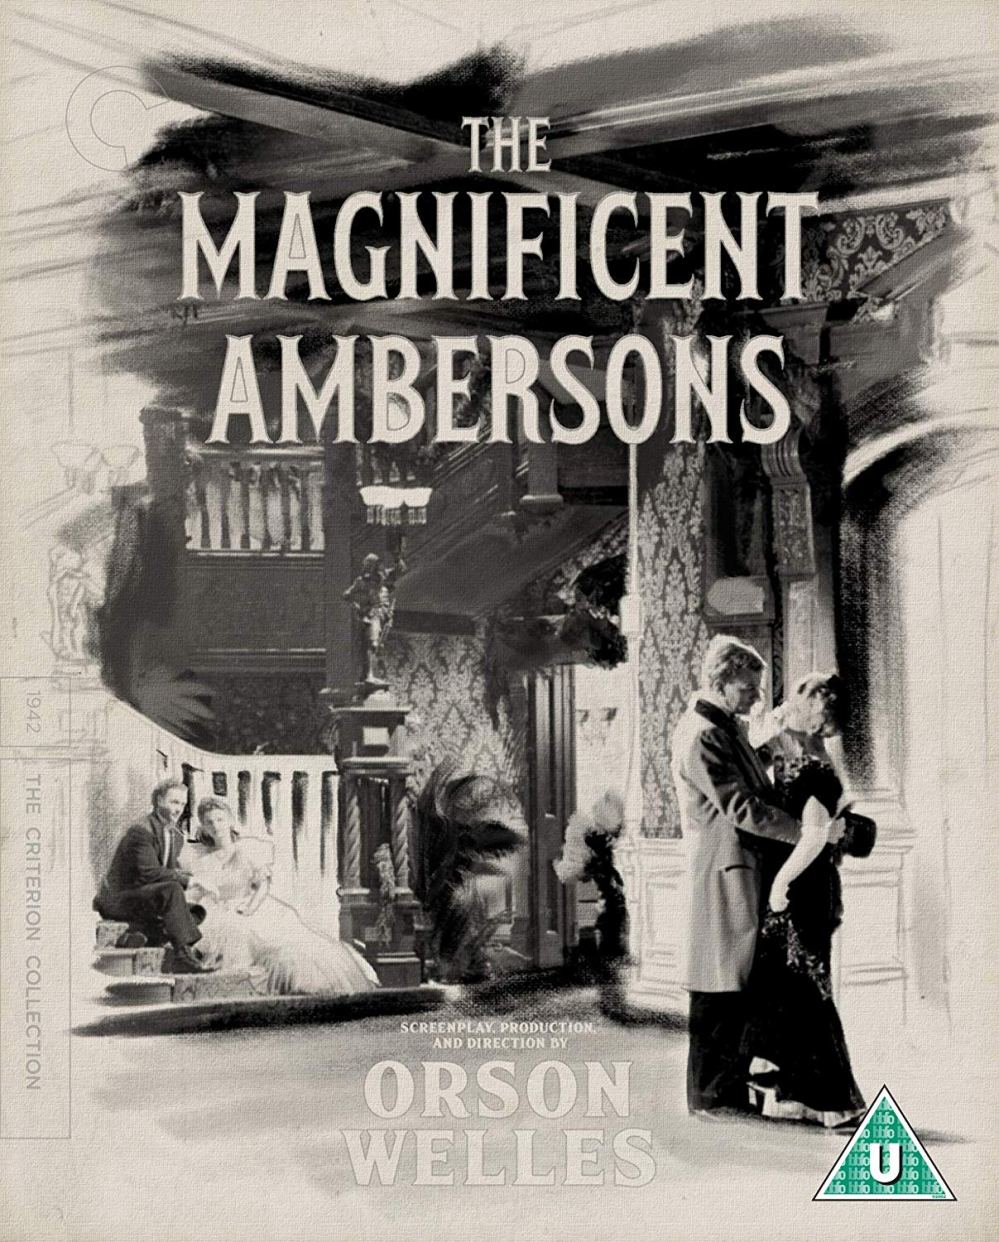 magnificent ambersons blu-ray